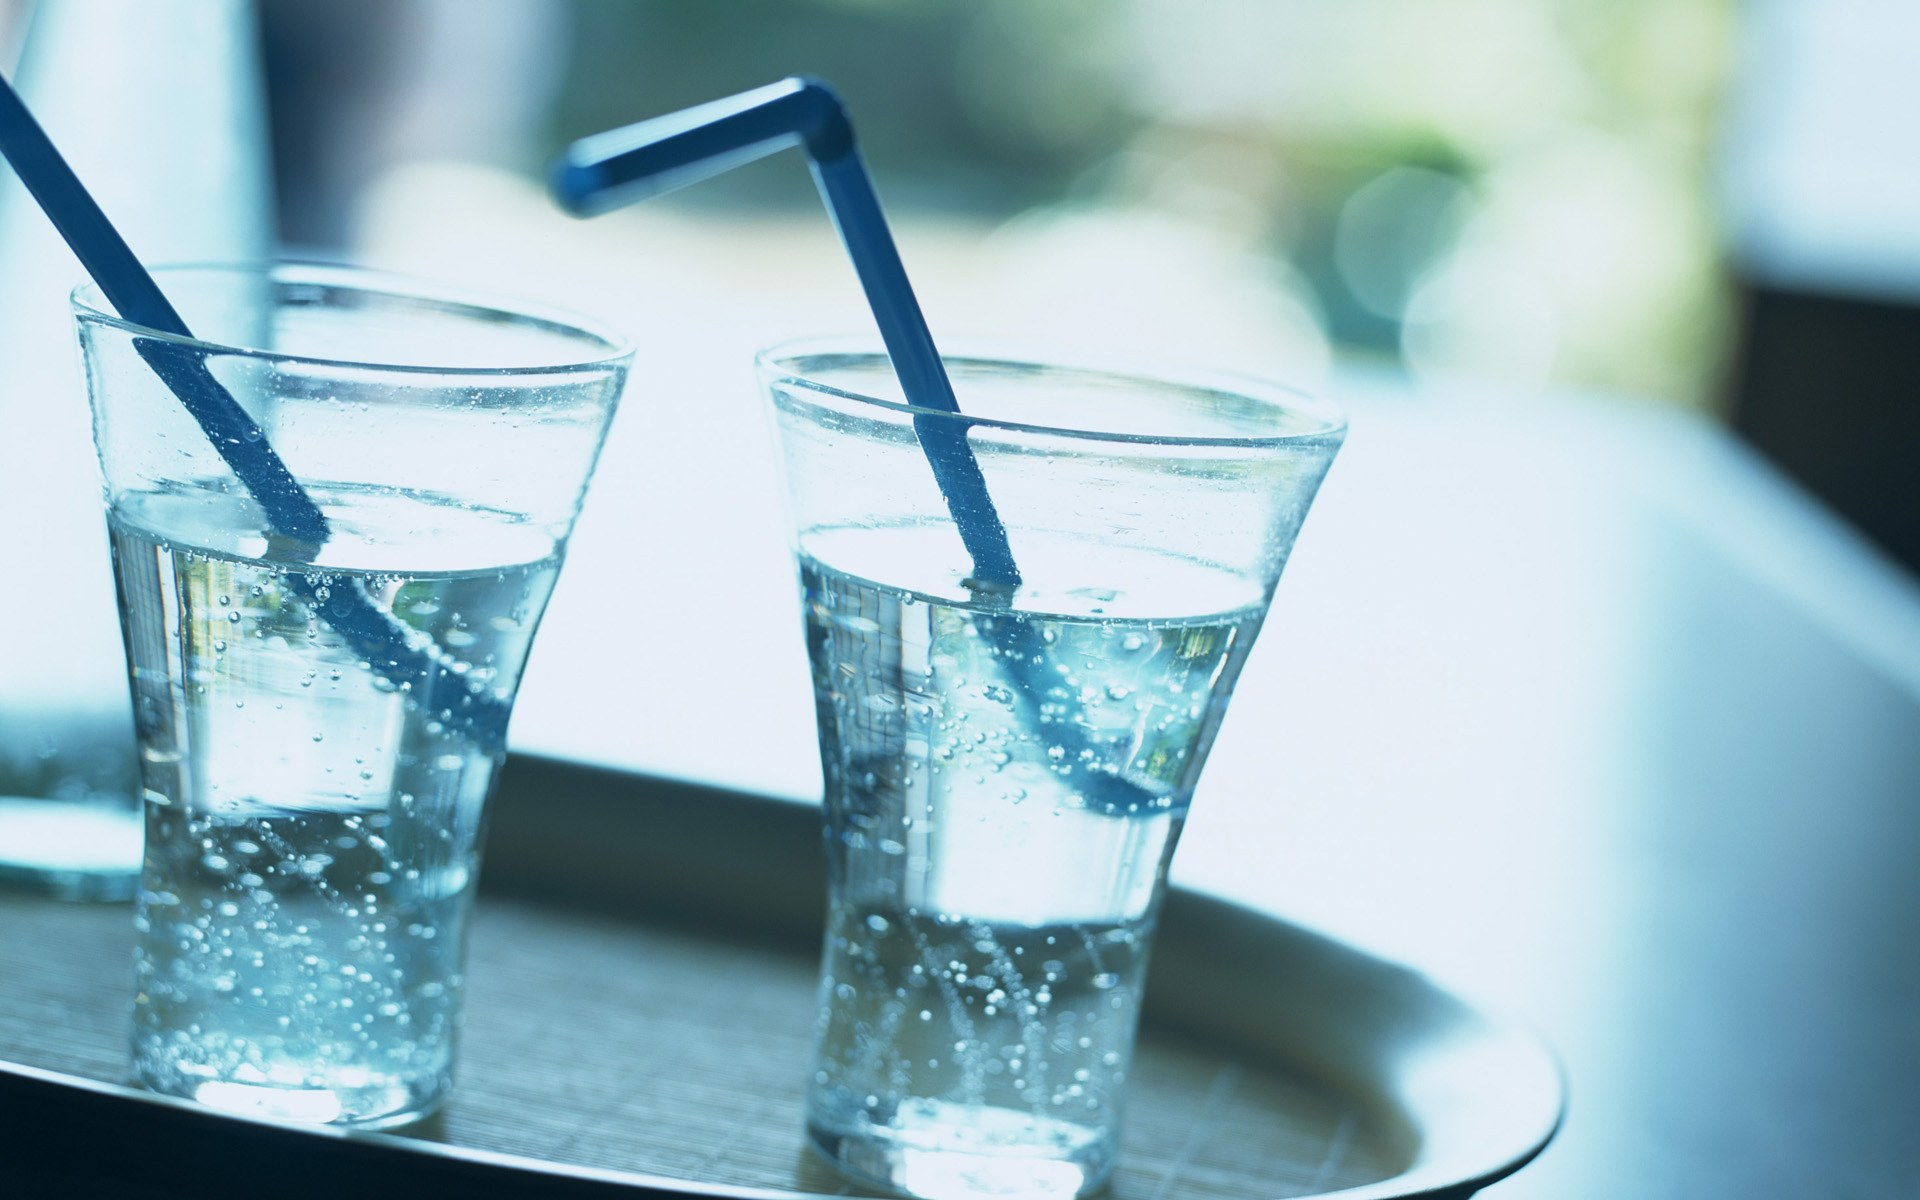 Is Carbonated Water Bad for You? - Scientific American